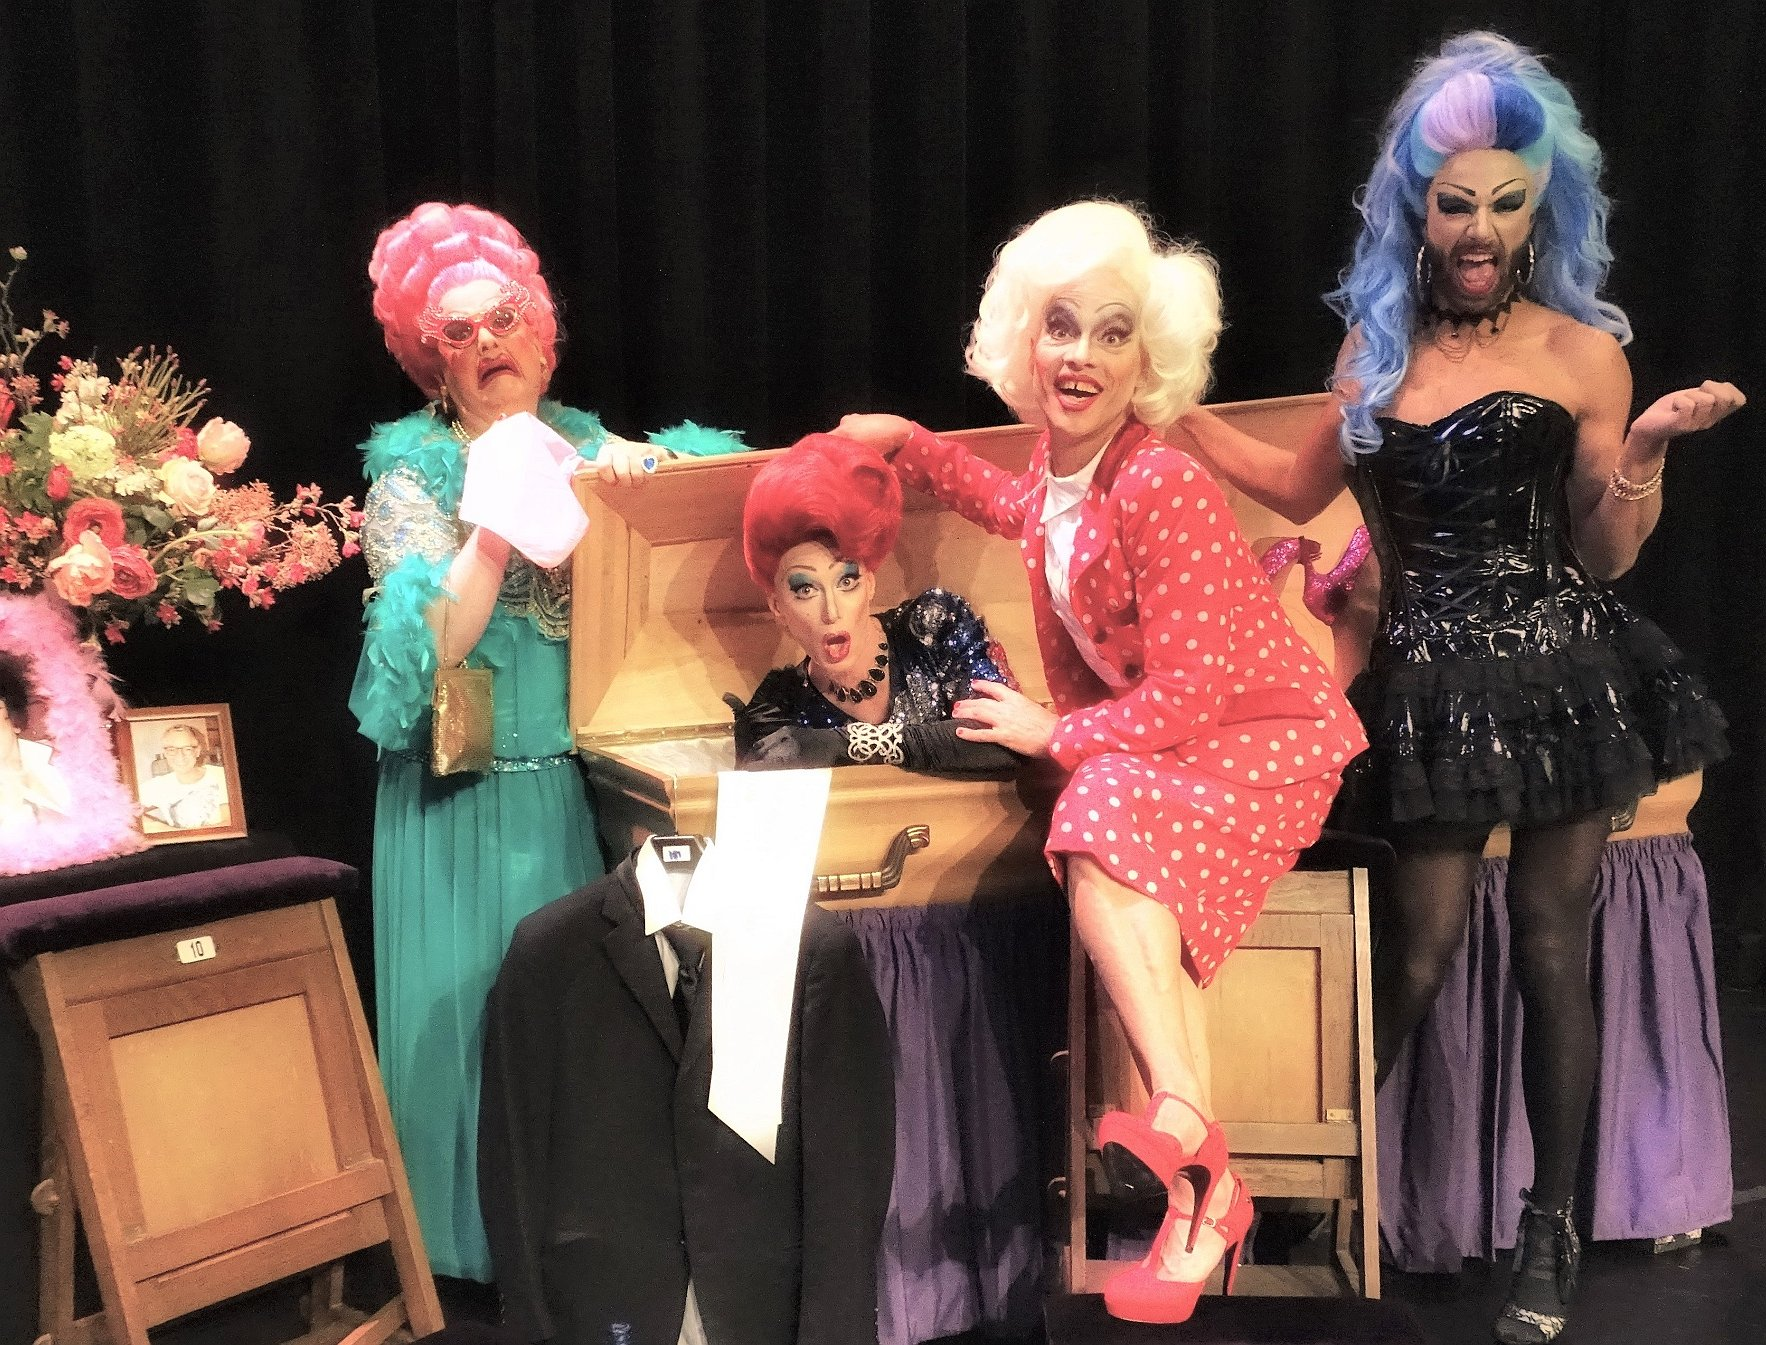 Komt dat zien: Four Drags and a Funeral